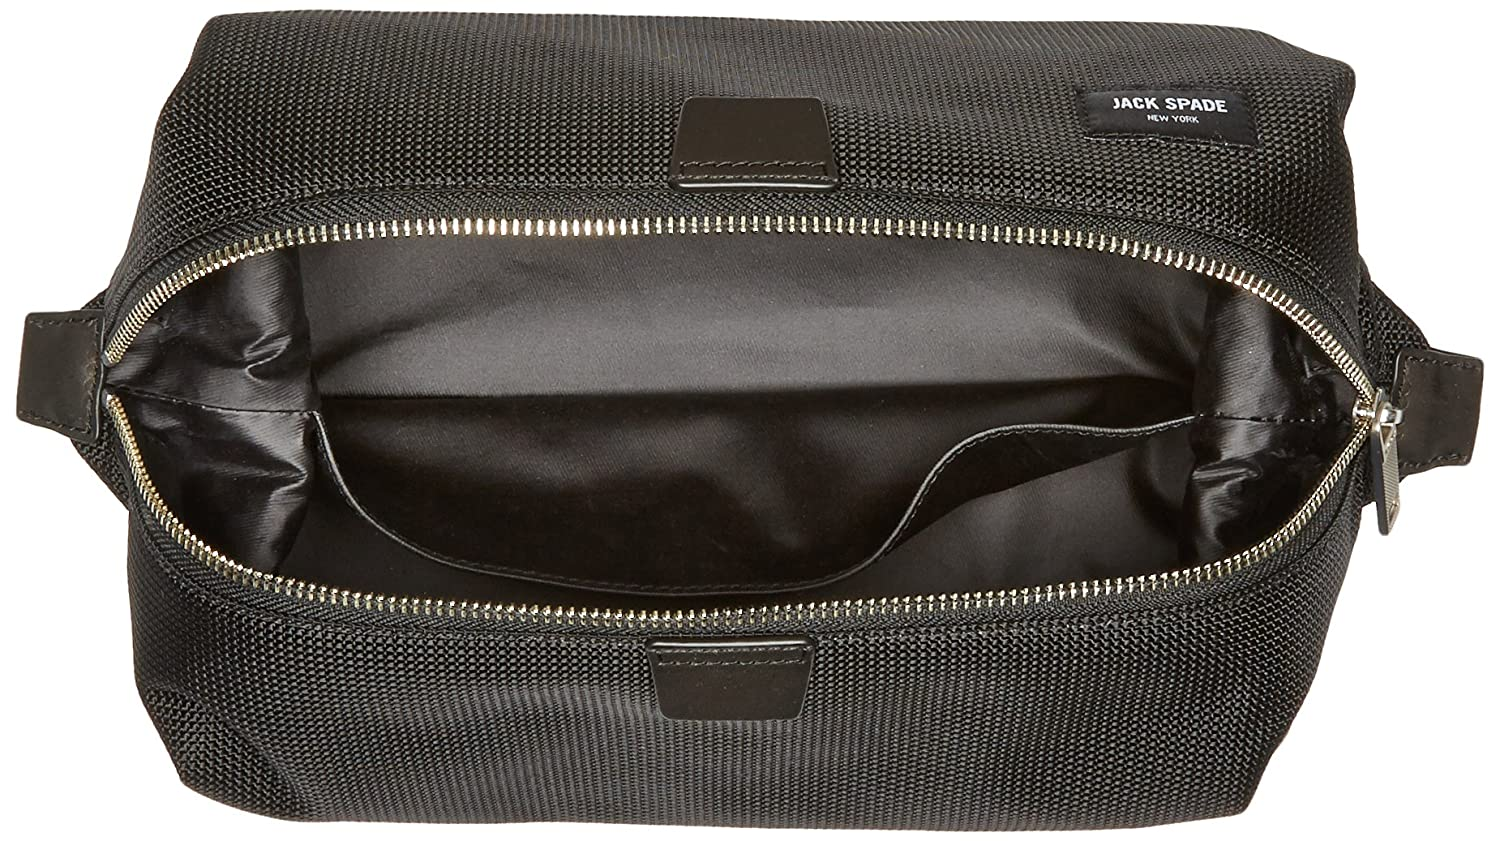 bb4c19335e7a Amazon.com  Jack Spade Carryall Case Travel Kit